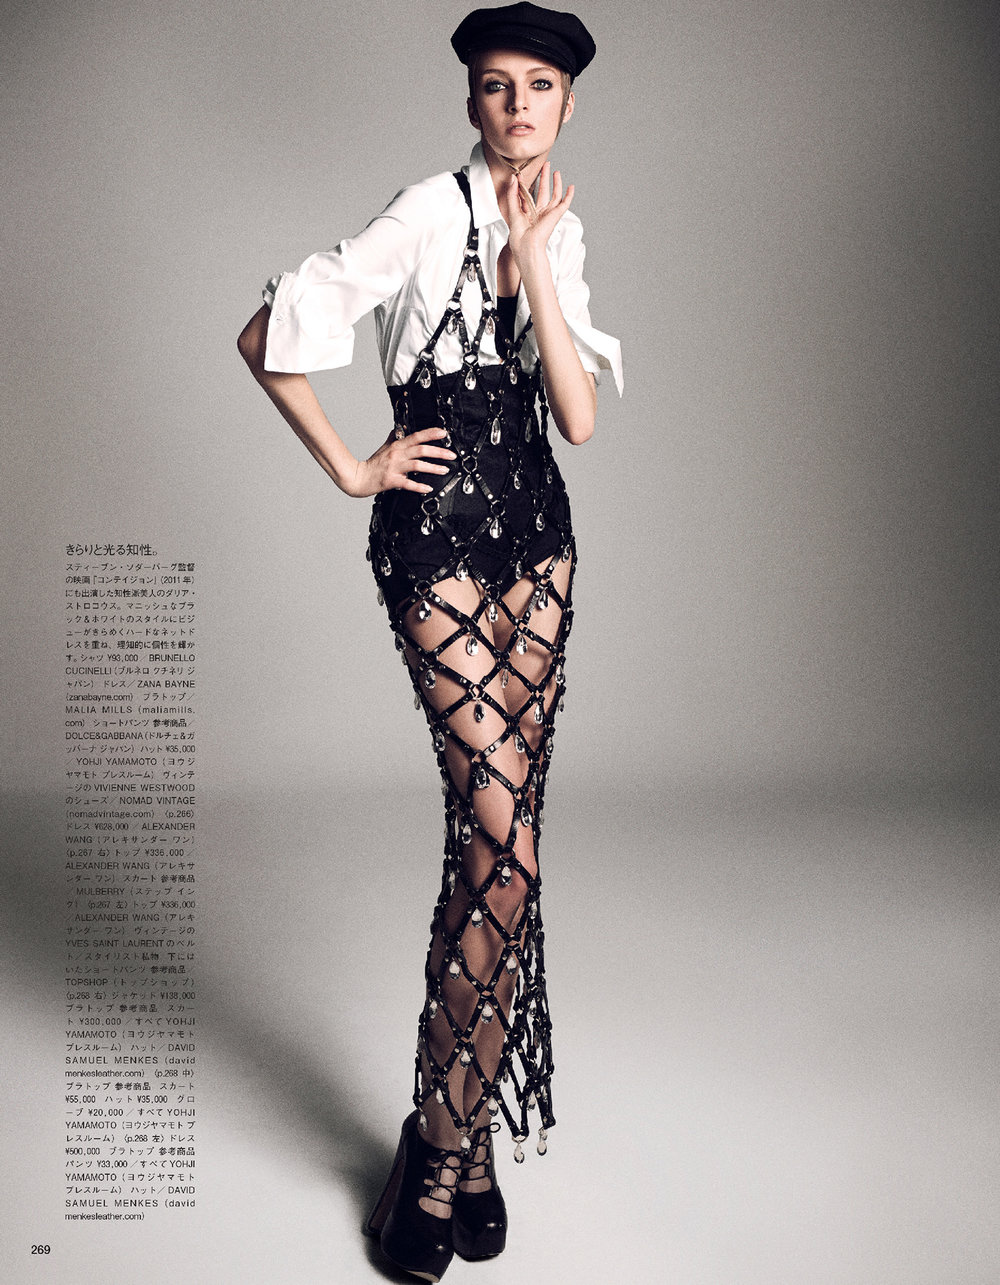 Giovanna-Battaglia-Vogue-Japan-March-2015-Digital-Generation-25.jpg